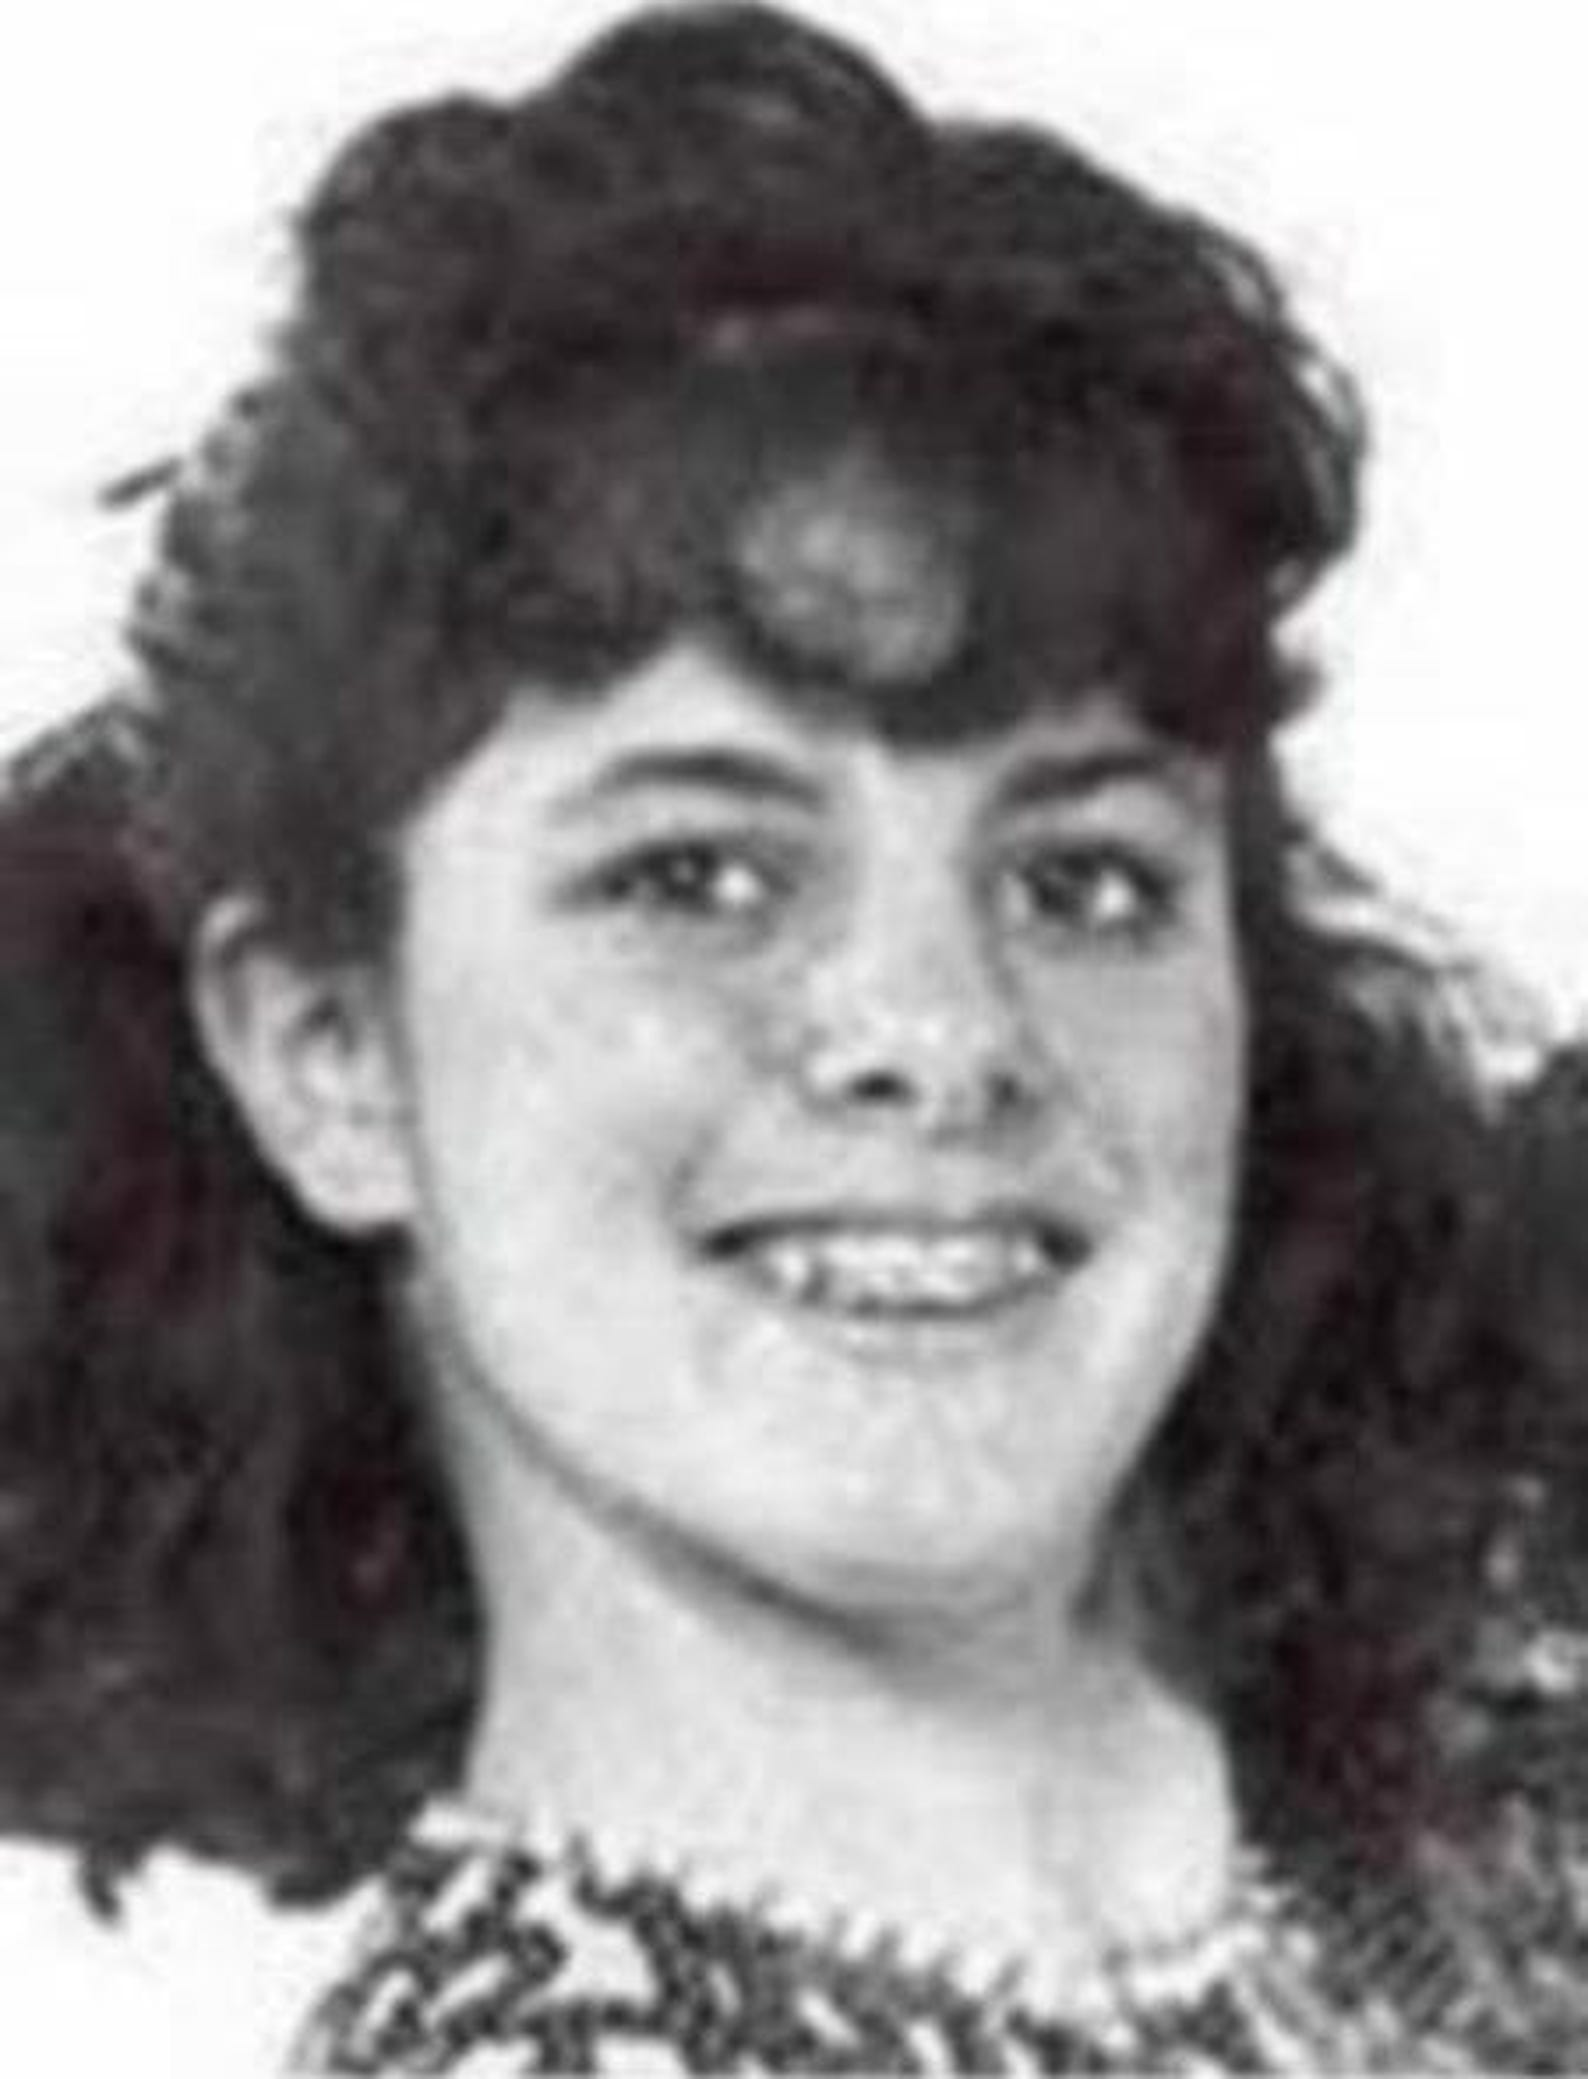 Ilene Beth Misheloff was 13 when she went missing from Dublin, California, on Jan. 30, 1989.More information and age-progressed photos here.